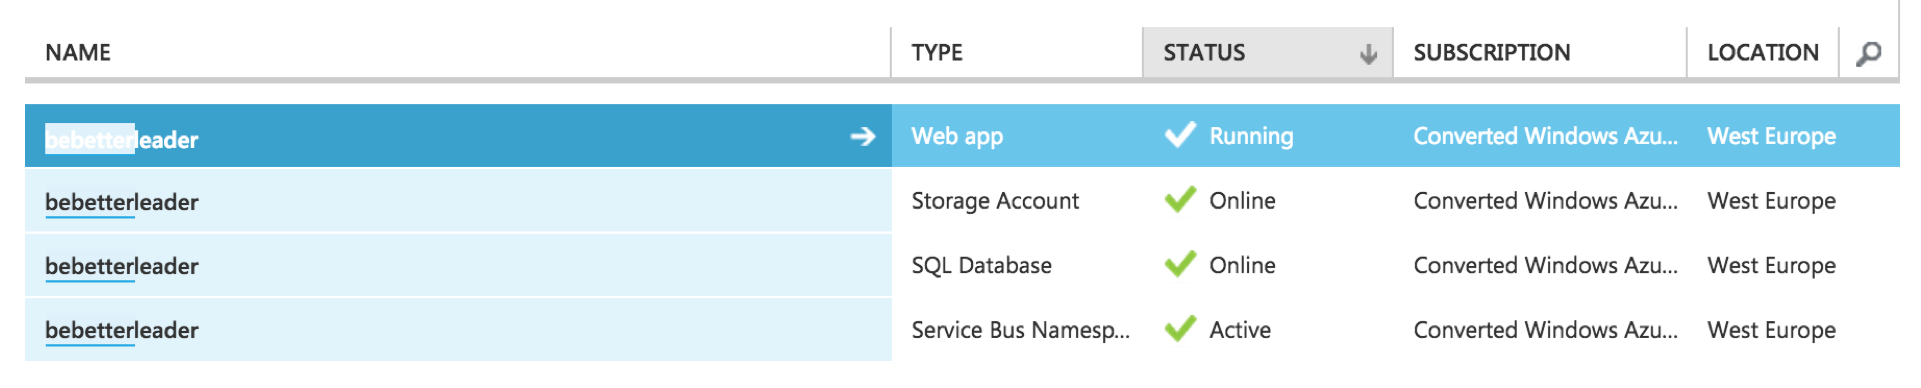 Azure sevices in use